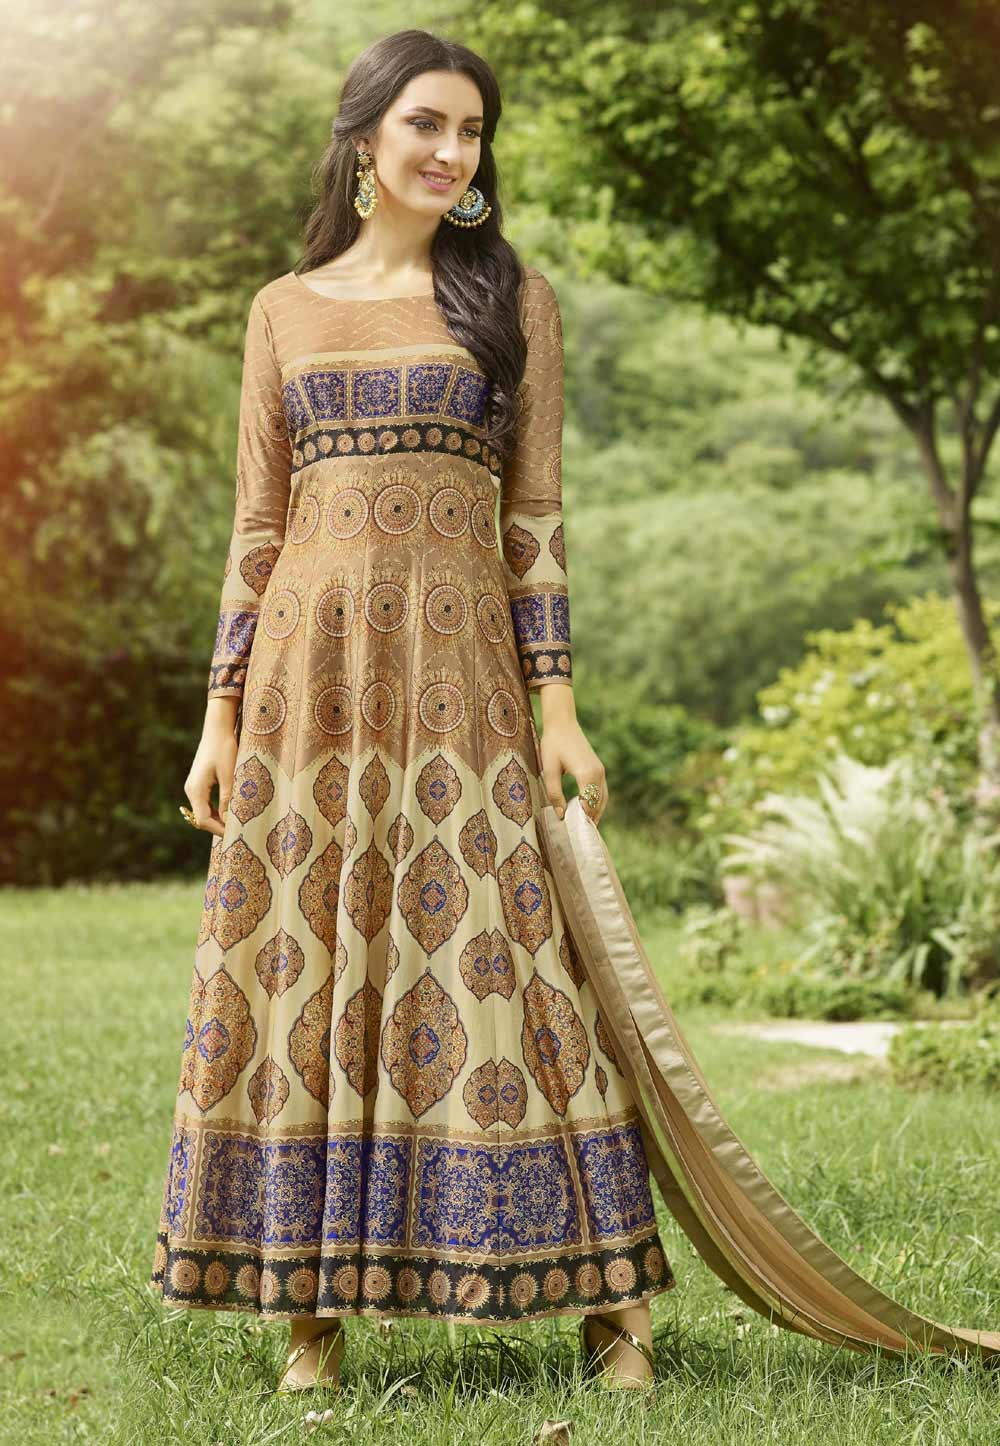 Party Wear Salwar Kameez in Brown Color & Imported Fabric